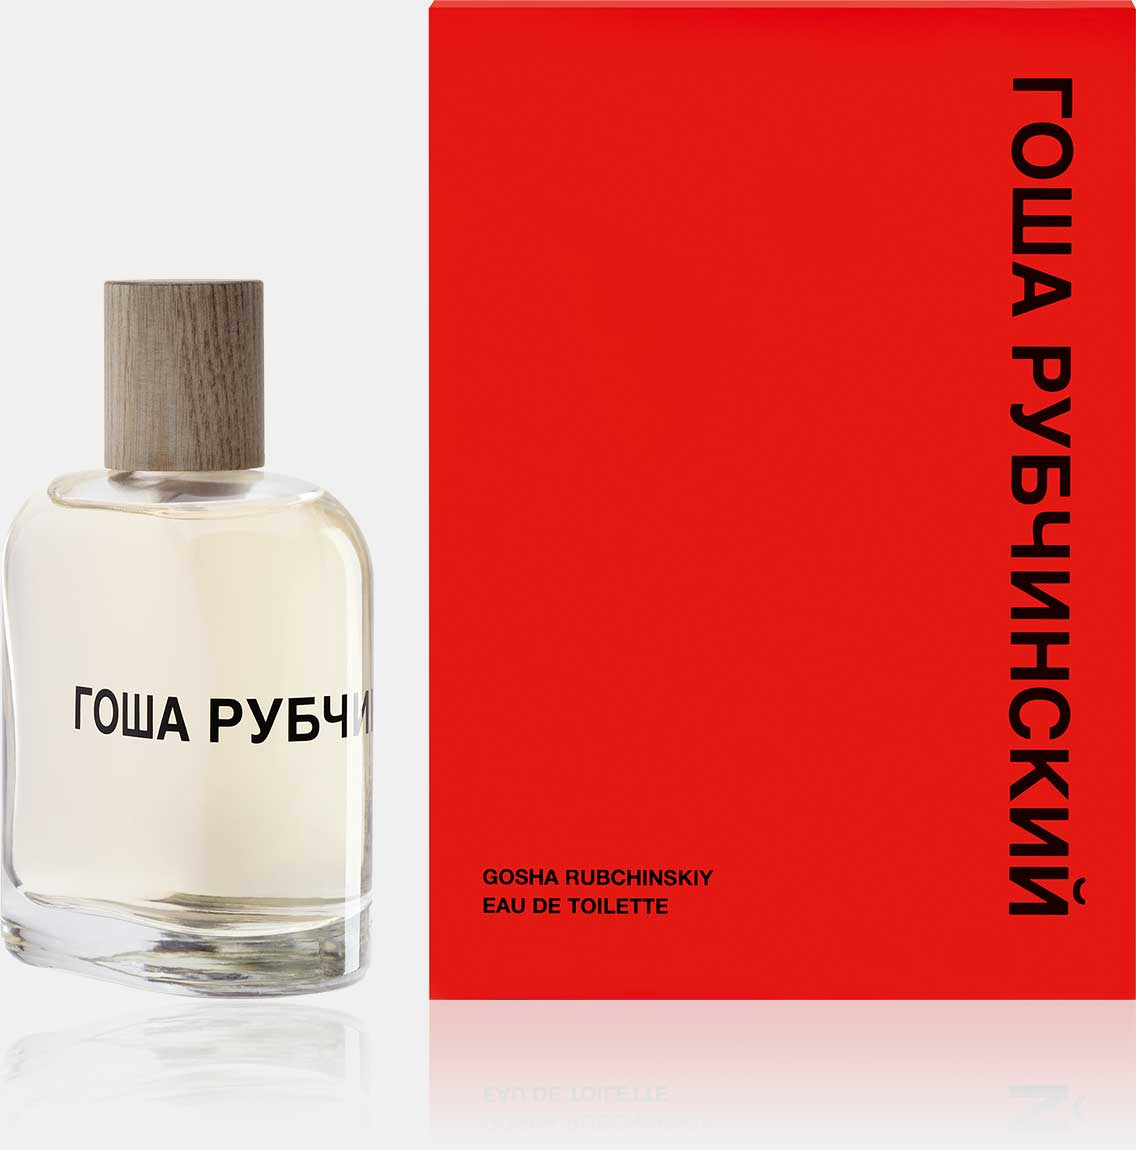 Gosha Rubchinskiy - Eau de Toilette (100ml natural spray)